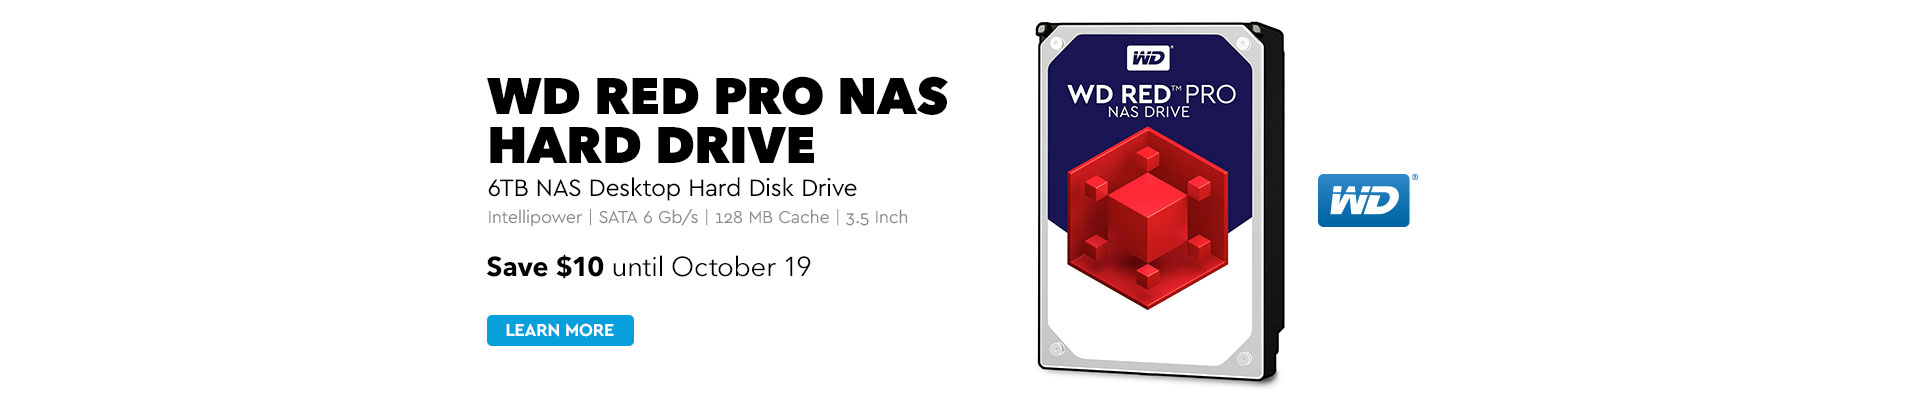 WD OEM Red